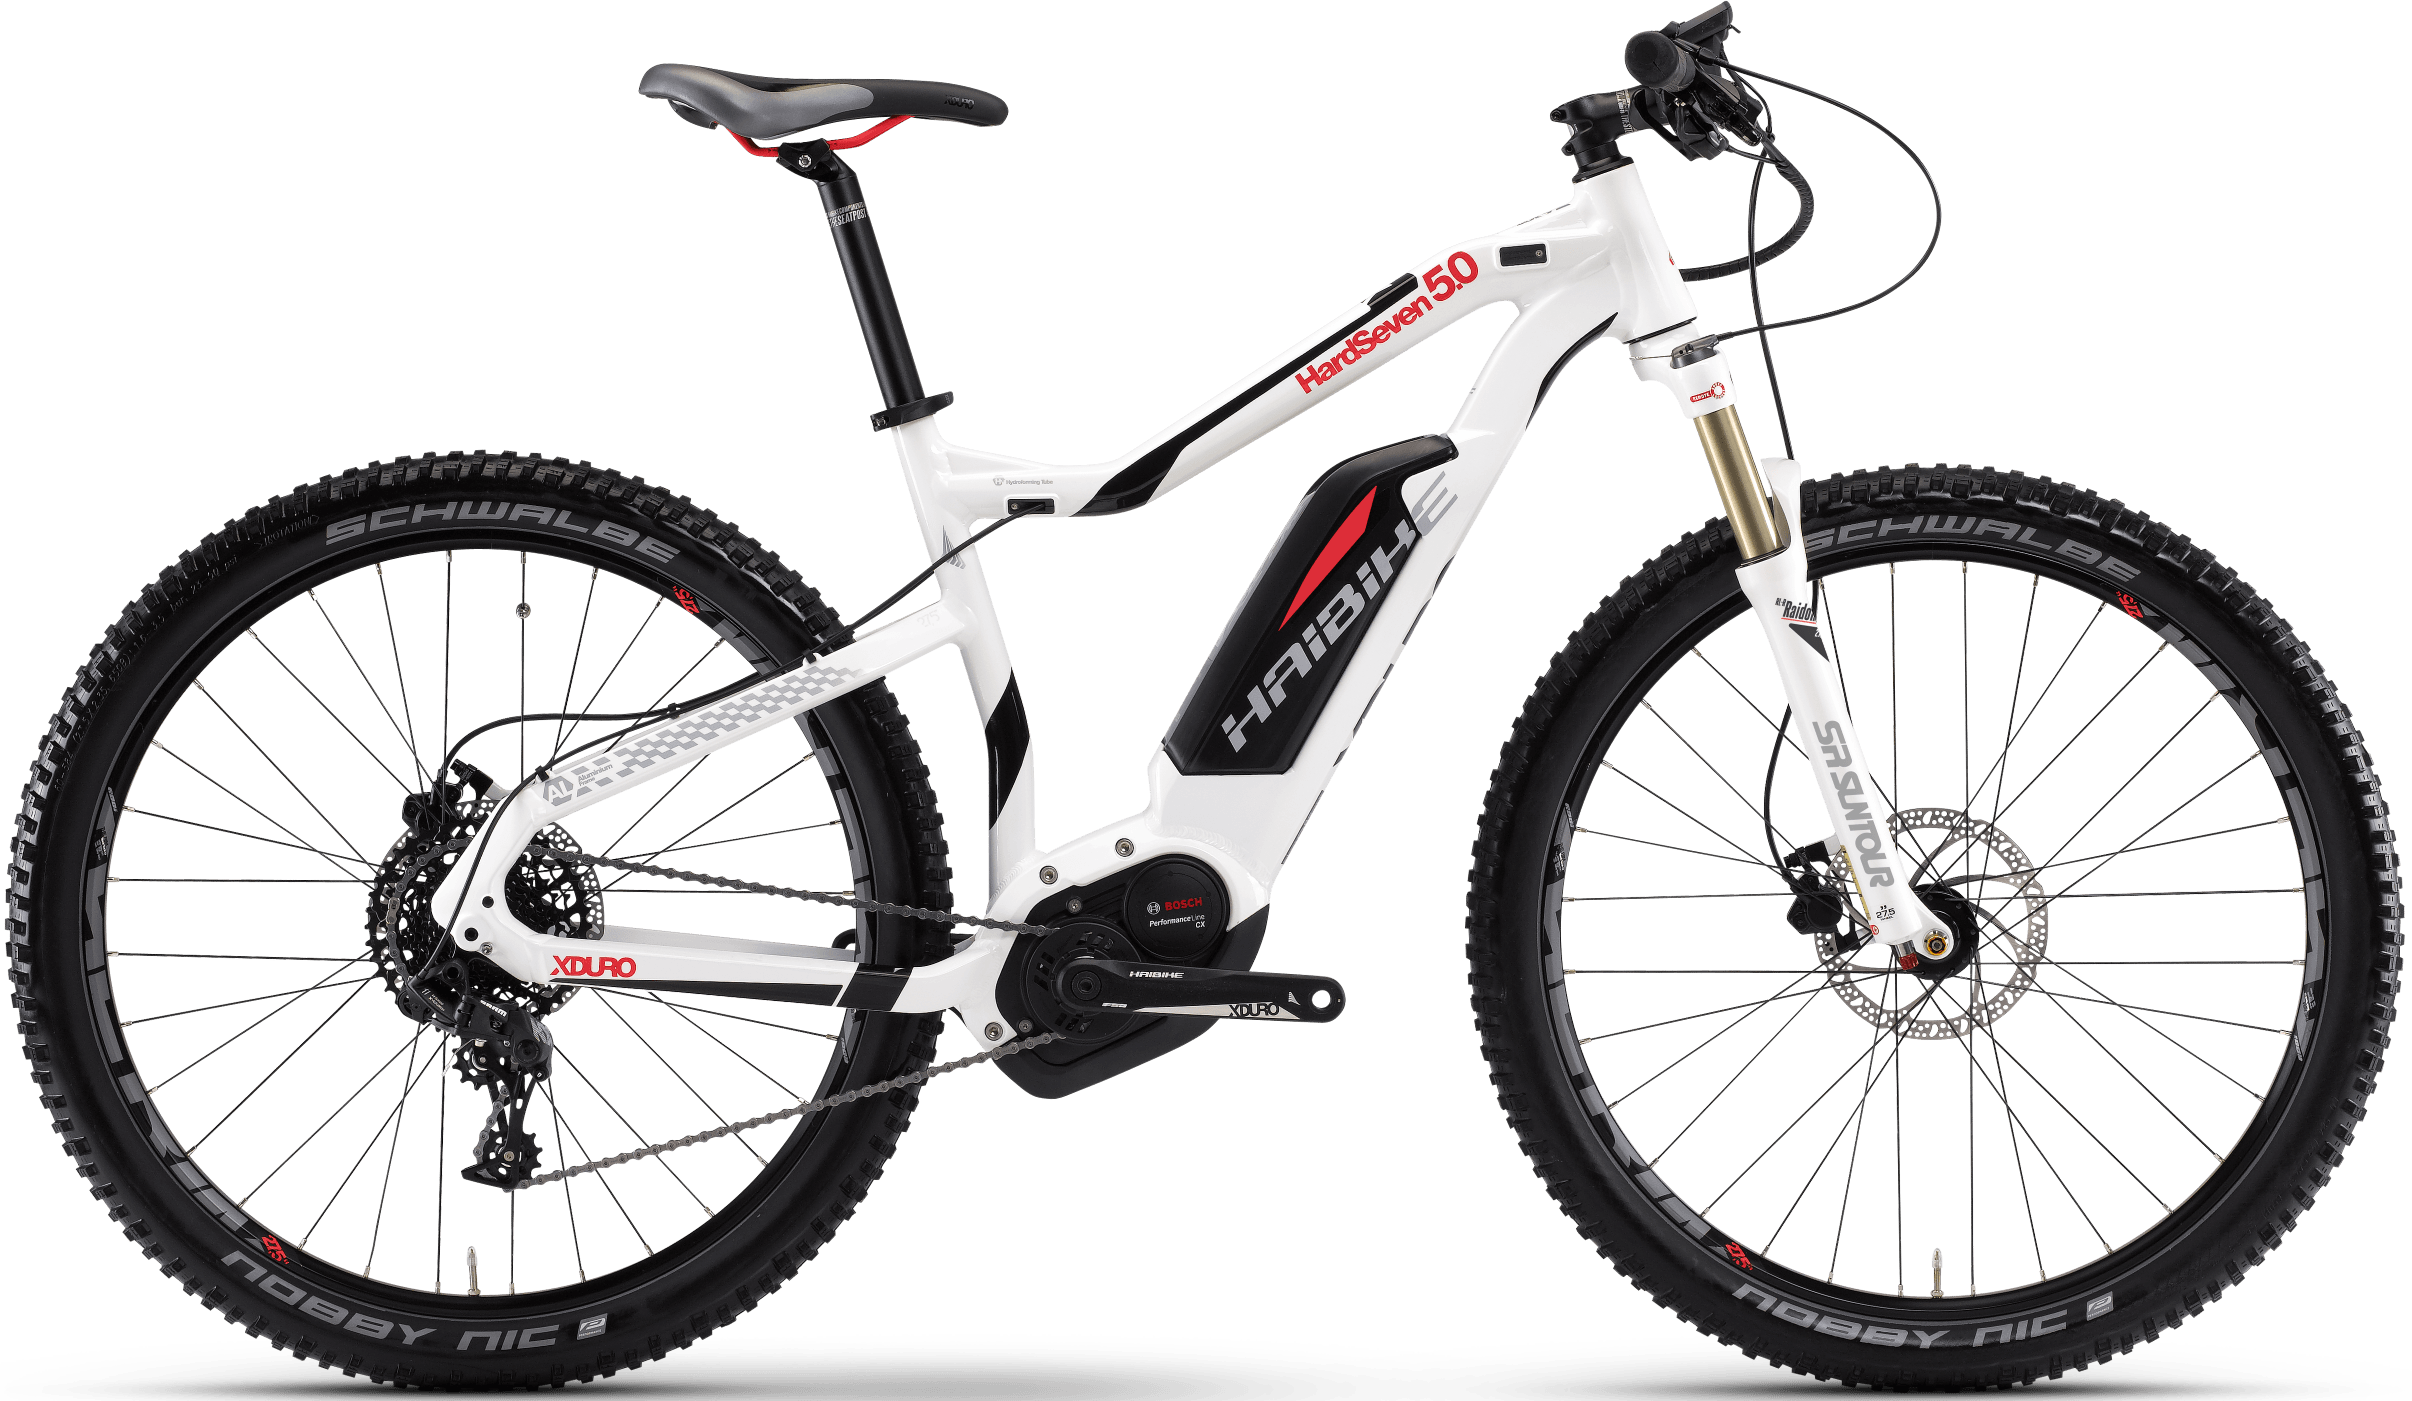 haibike xduro hardseven 5 0 gebraucht e mountainbike. Black Bedroom Furniture Sets. Home Design Ideas